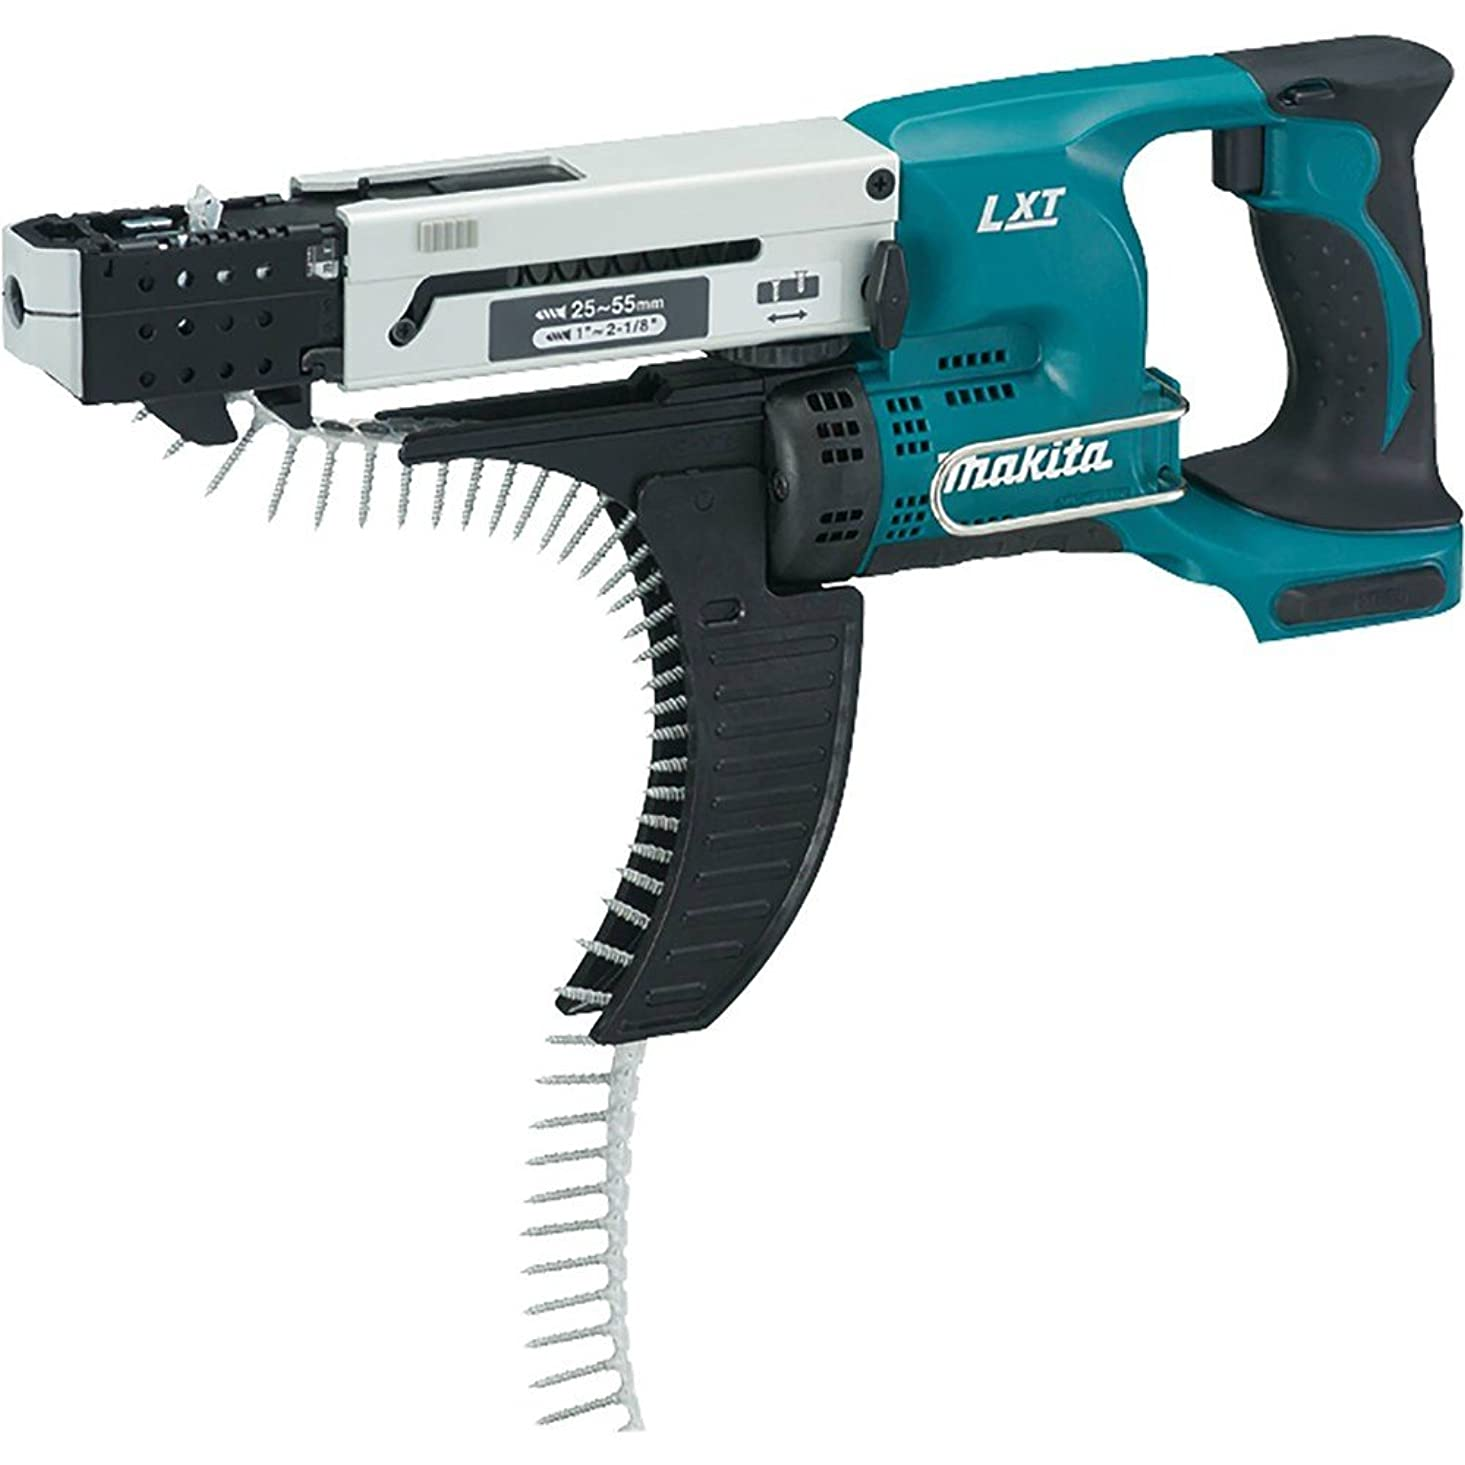 タイヤバットホールドオールMakita XRF02Z 18V LXT Lithium-Ion Cordless Autofeed Screwdriver, Tool Only by Makita